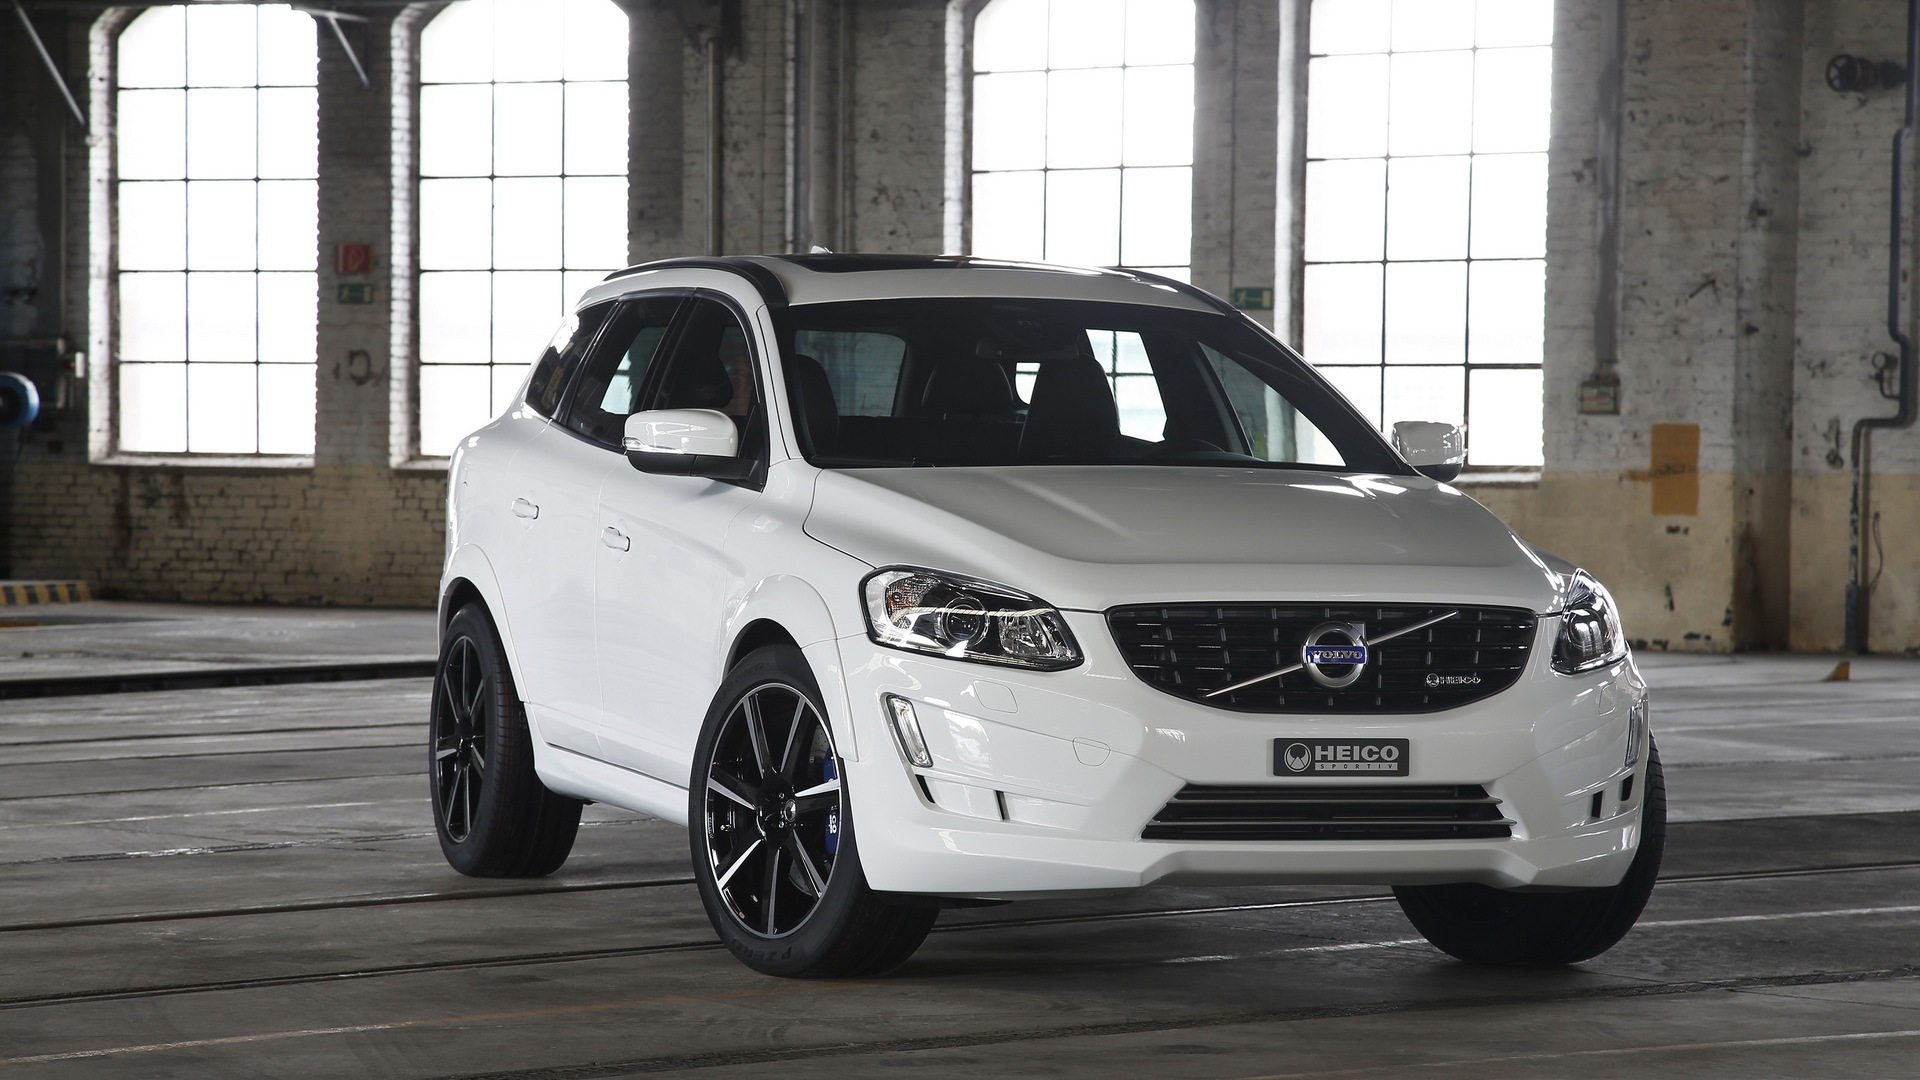 HEICO SPORTIV Volvo XC60 photos and wallpapers   tuningnewsnet 1920x1080